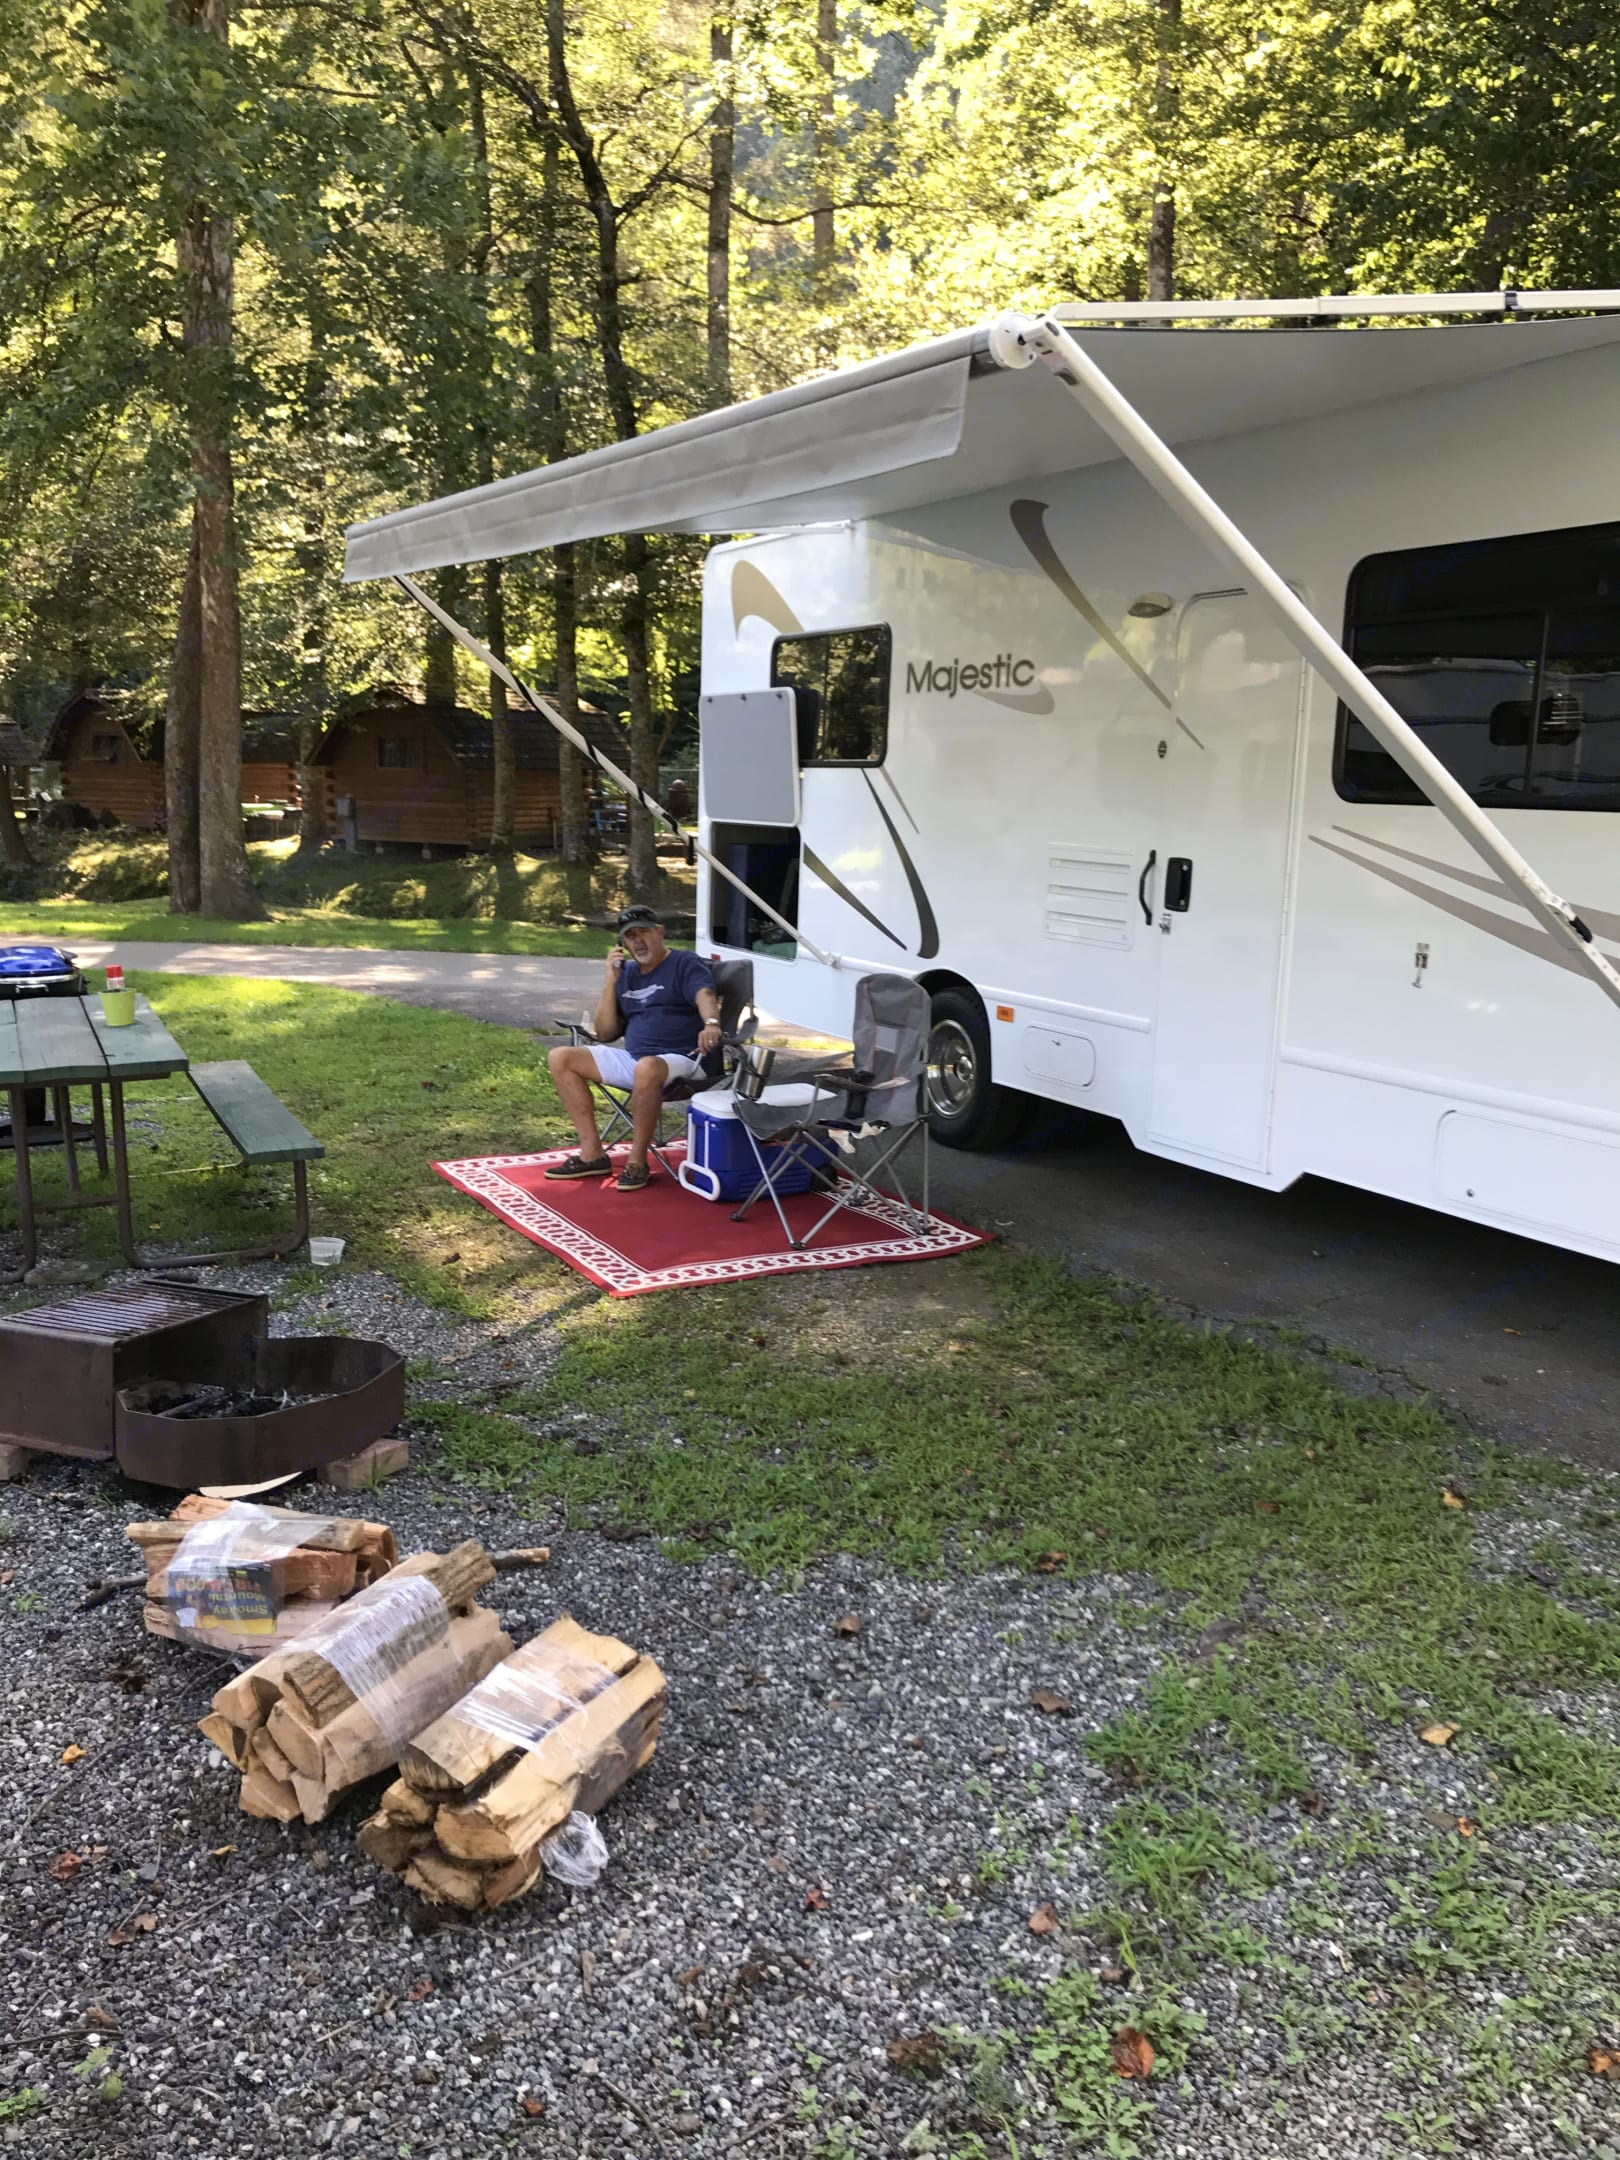 Large Awning allows you to sit outside with plenty of shade, and out of the rain!. Thor Motor Coach Four Winds Majestic 2013